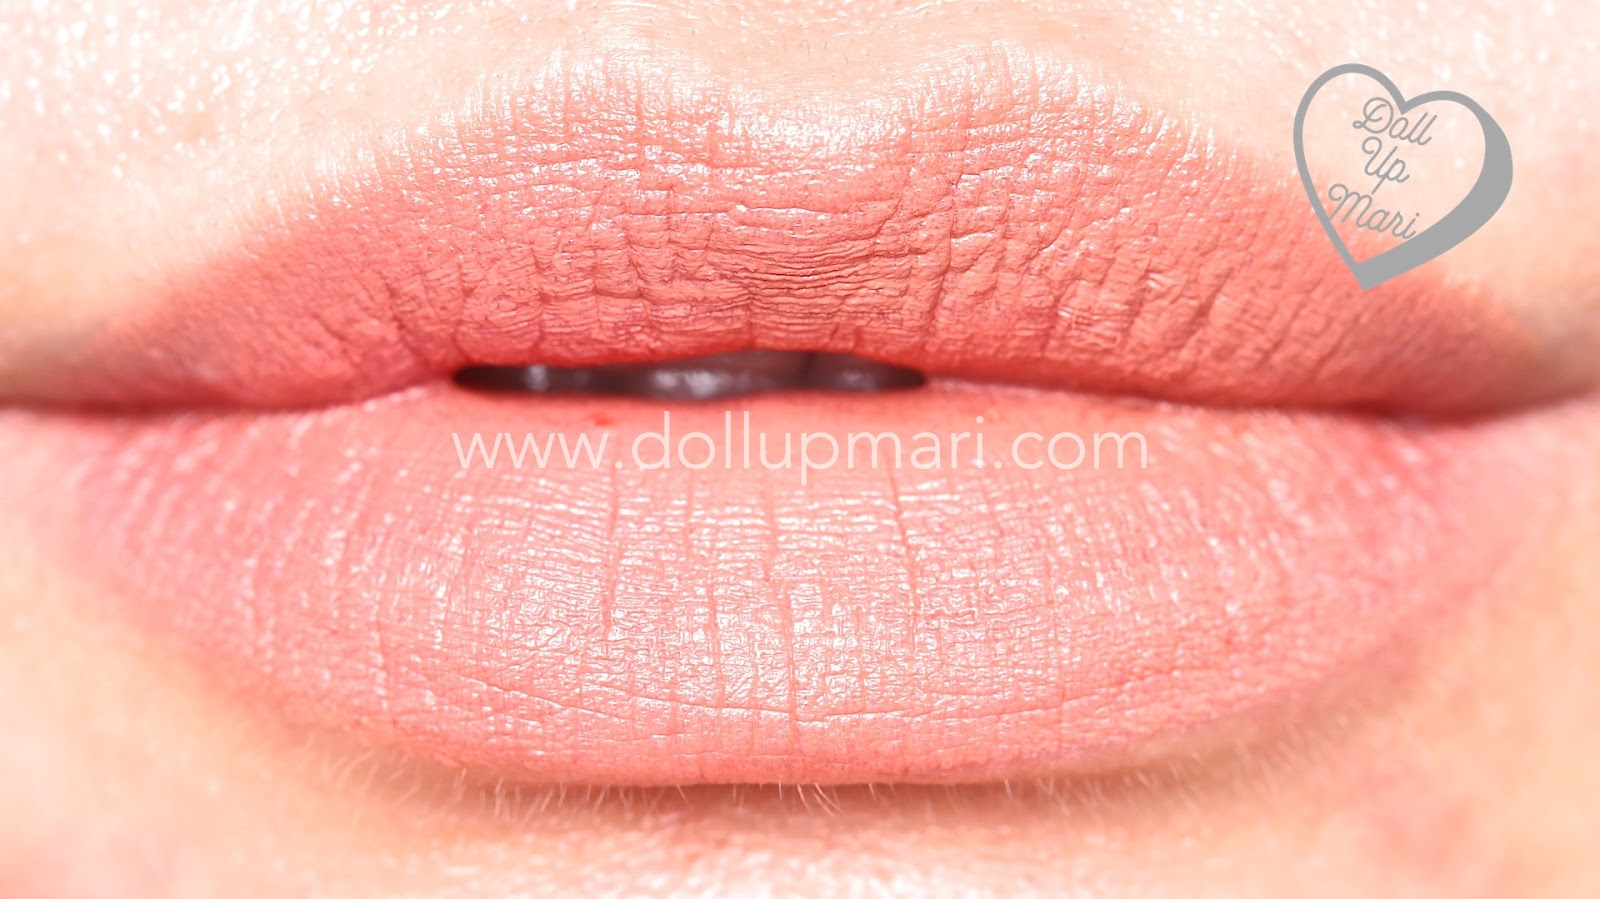 Lip Swatch of Au Naturale shade of AVON Perfectly Matte Lipstick